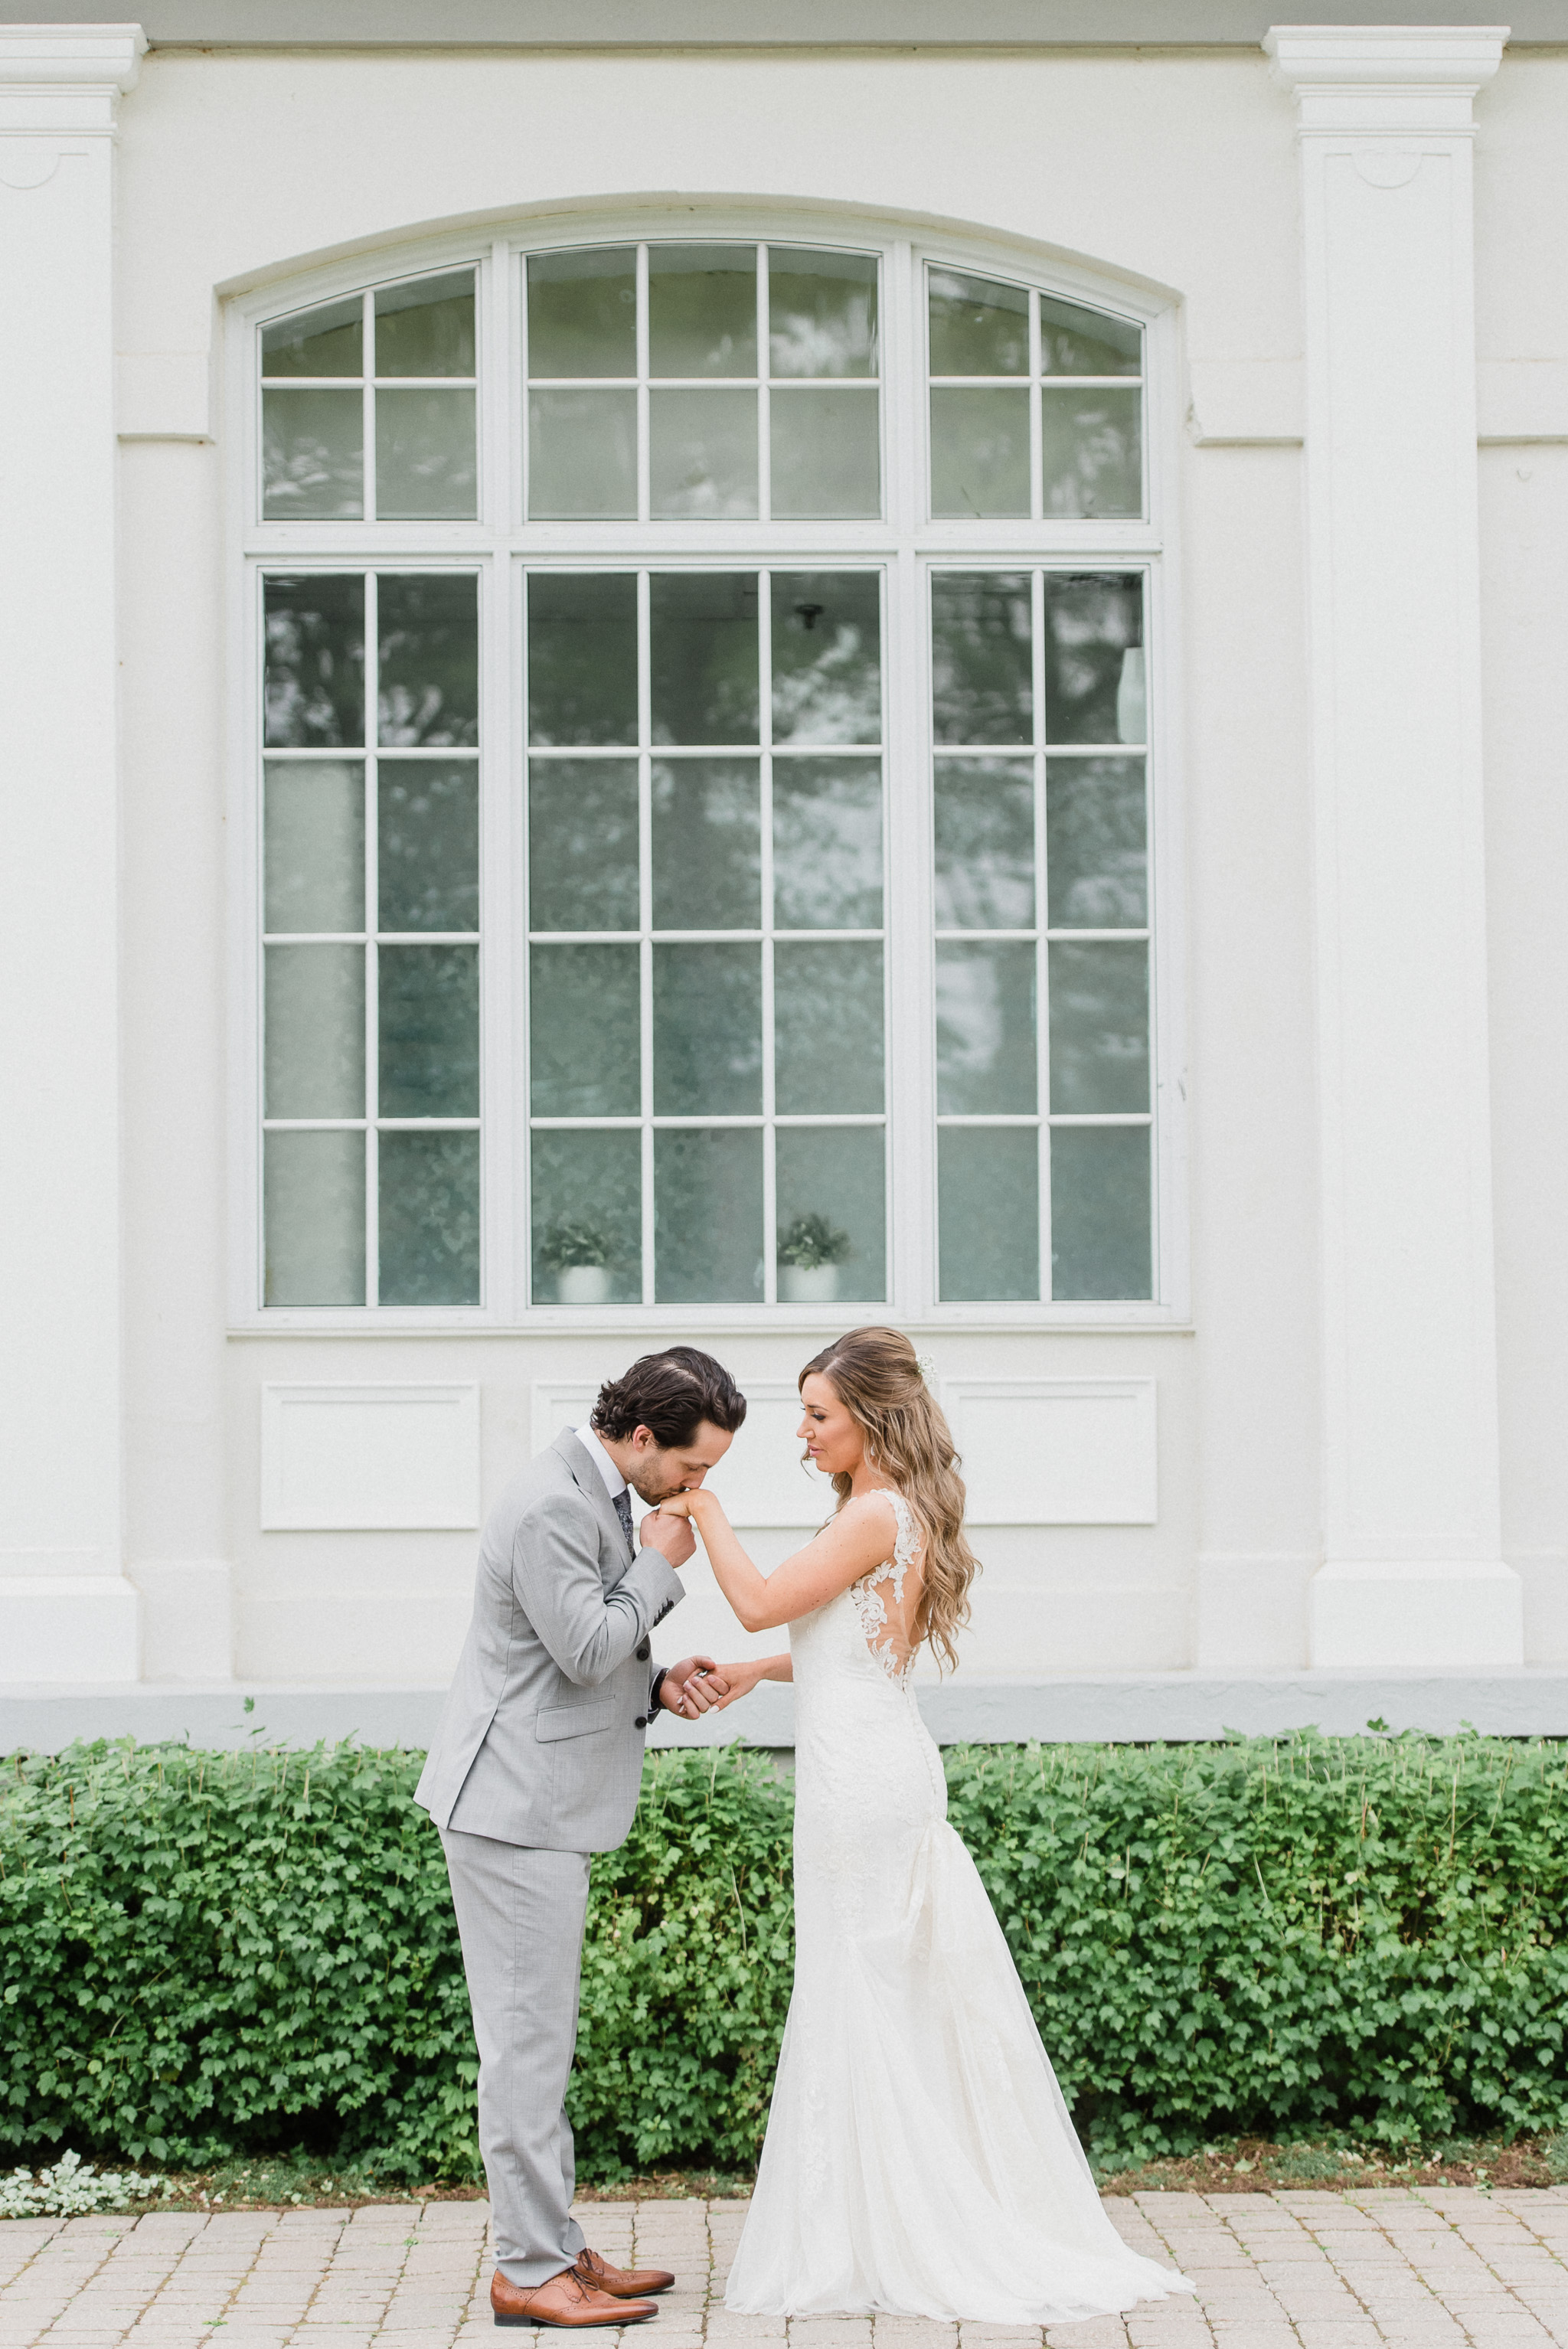 LaSalle Park Conference Centre Wedding by Jenn Kavanagh Photography